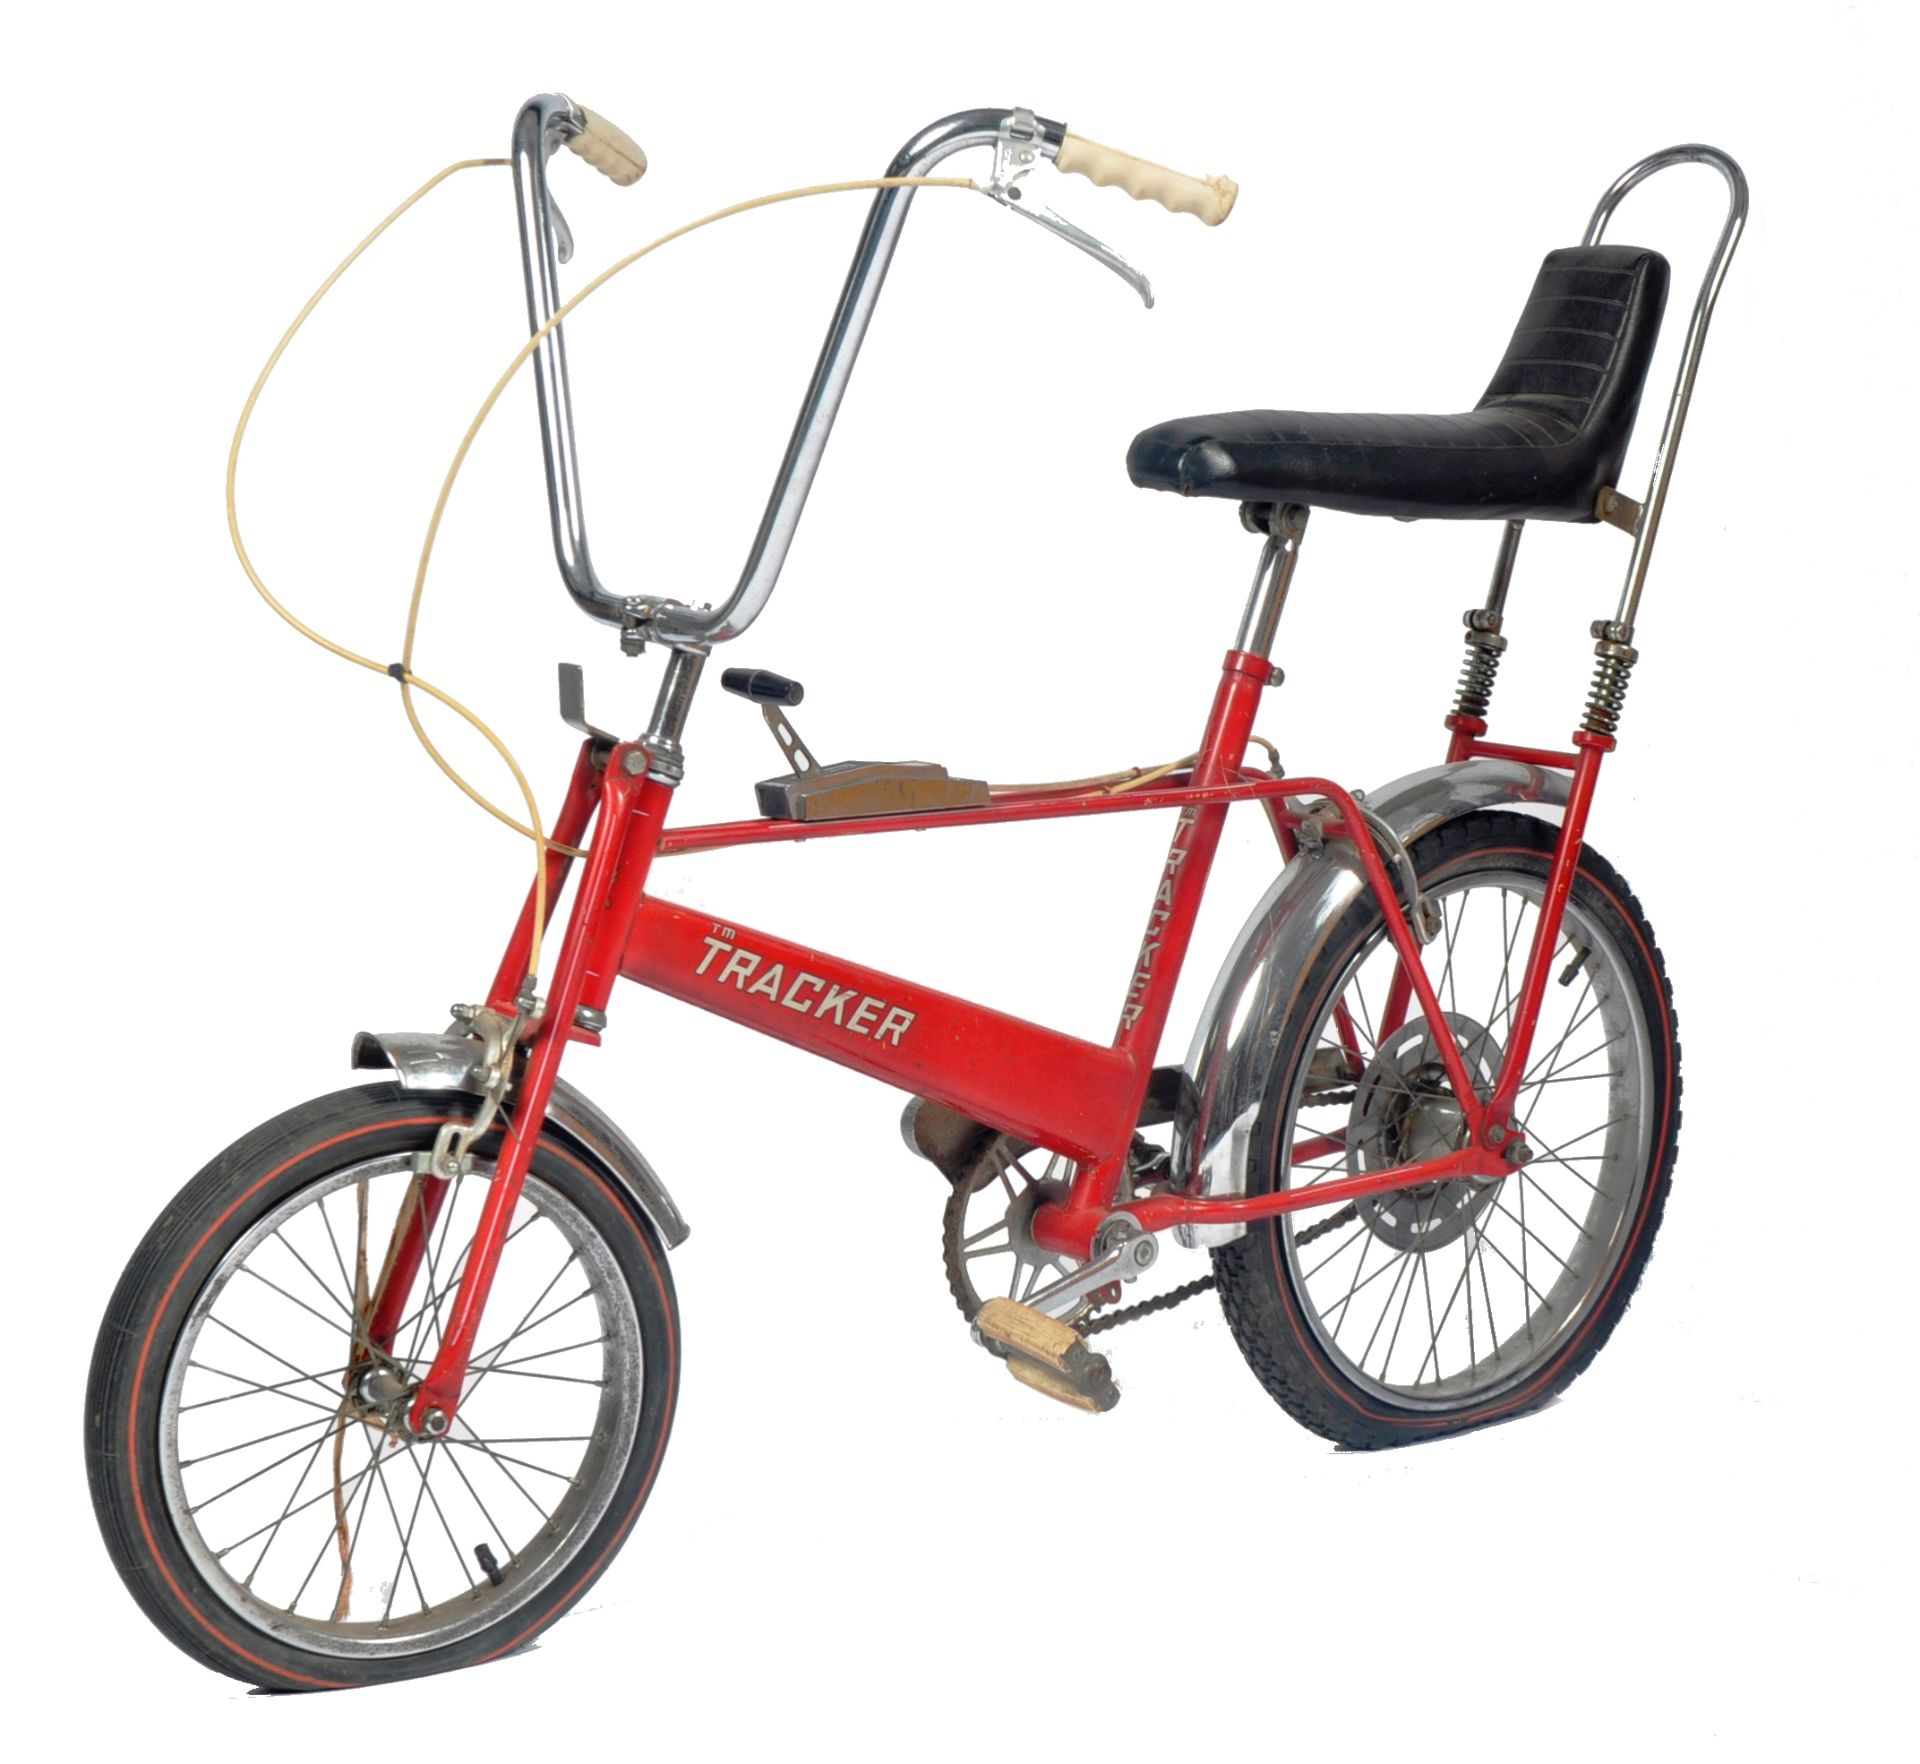 DIANA PRINCESS OF WALES - HER CHILDHOOD TRACKER BICYCLE - Image 2 of 11